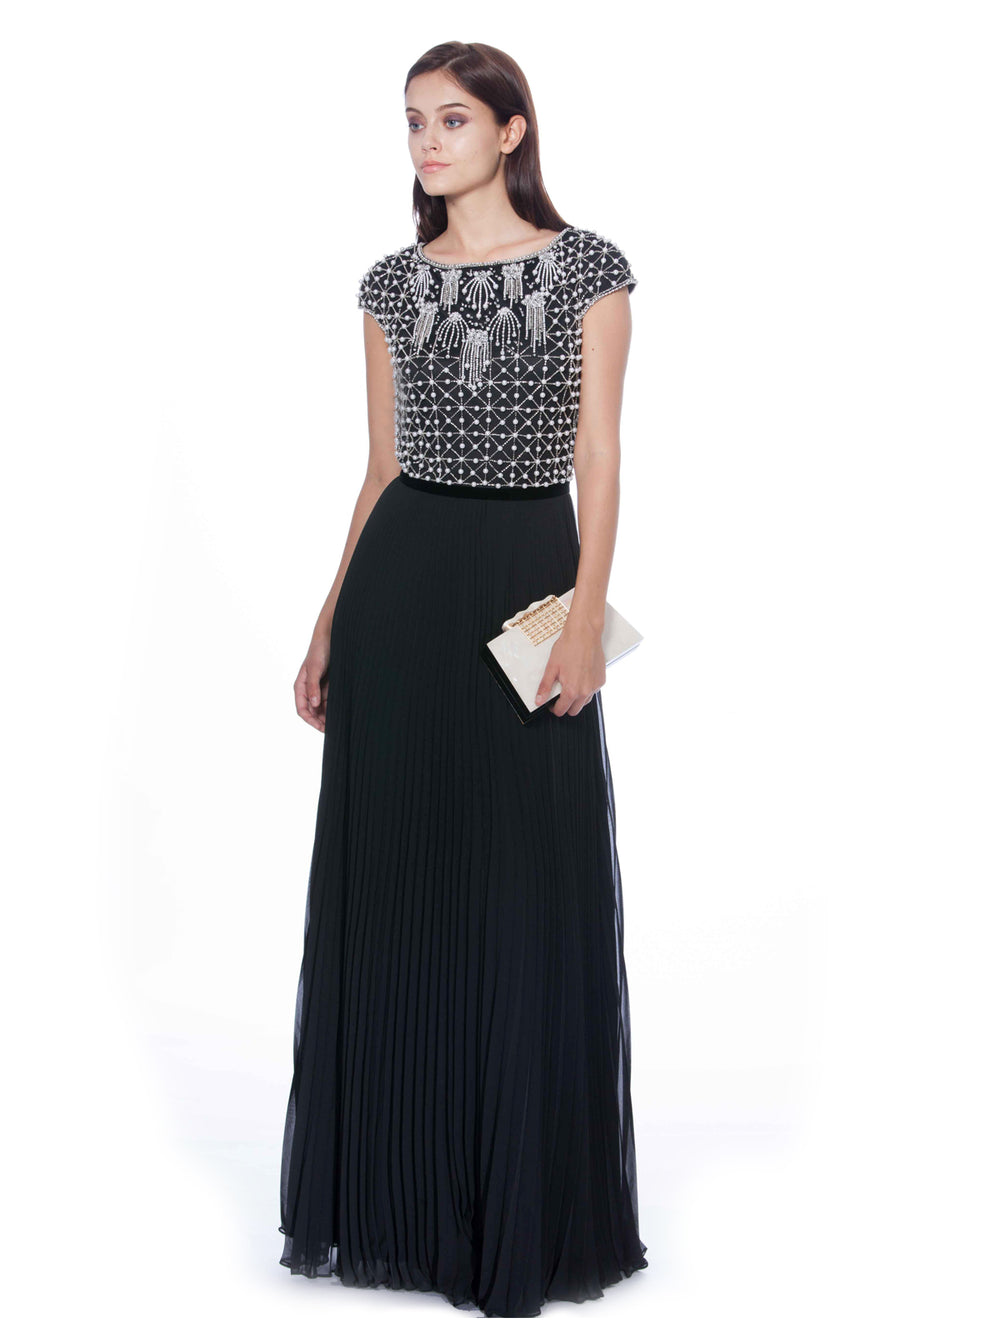 Beaded Floor-Length Gown, THEIA - elilhaam.com